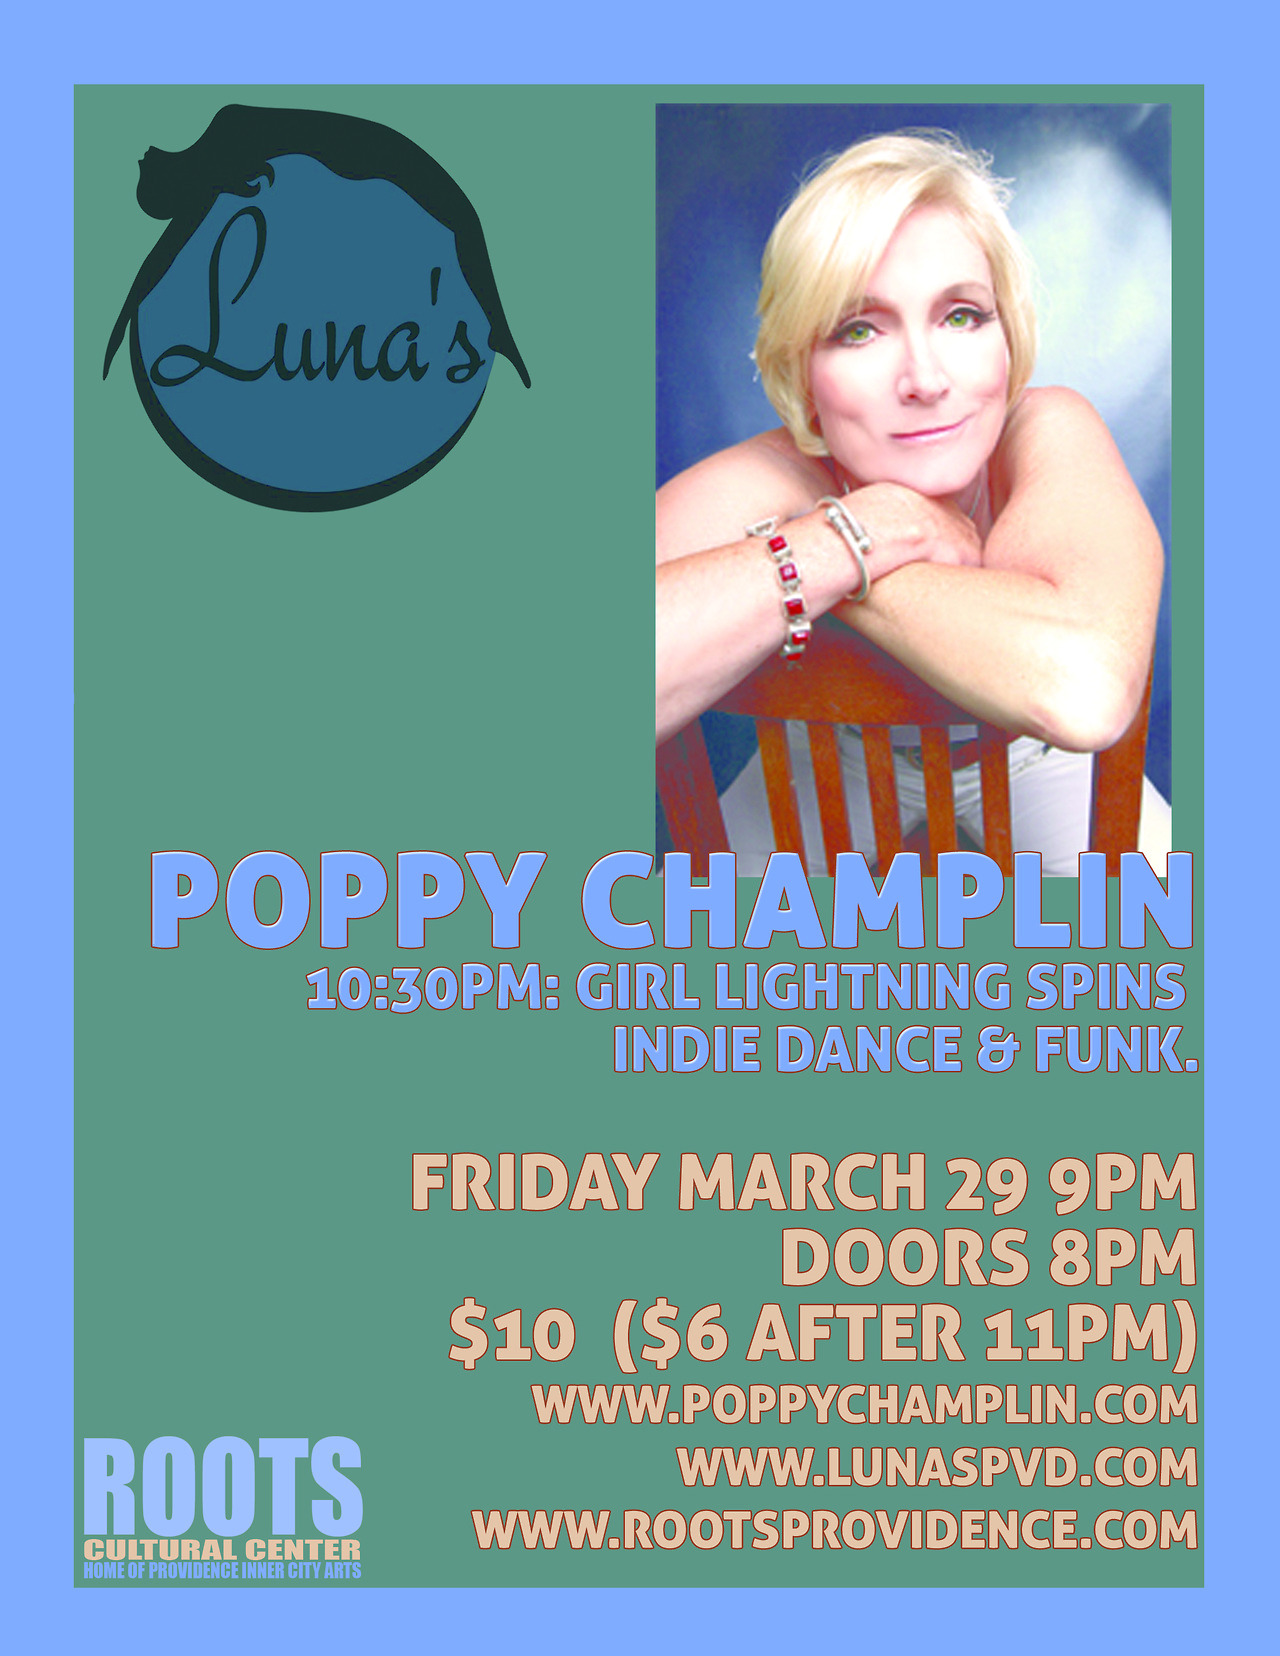 Comedian Poppy Champlin @ Luna's this Friday 3/29 @9pm, $10, 276 Westminster St. Providence